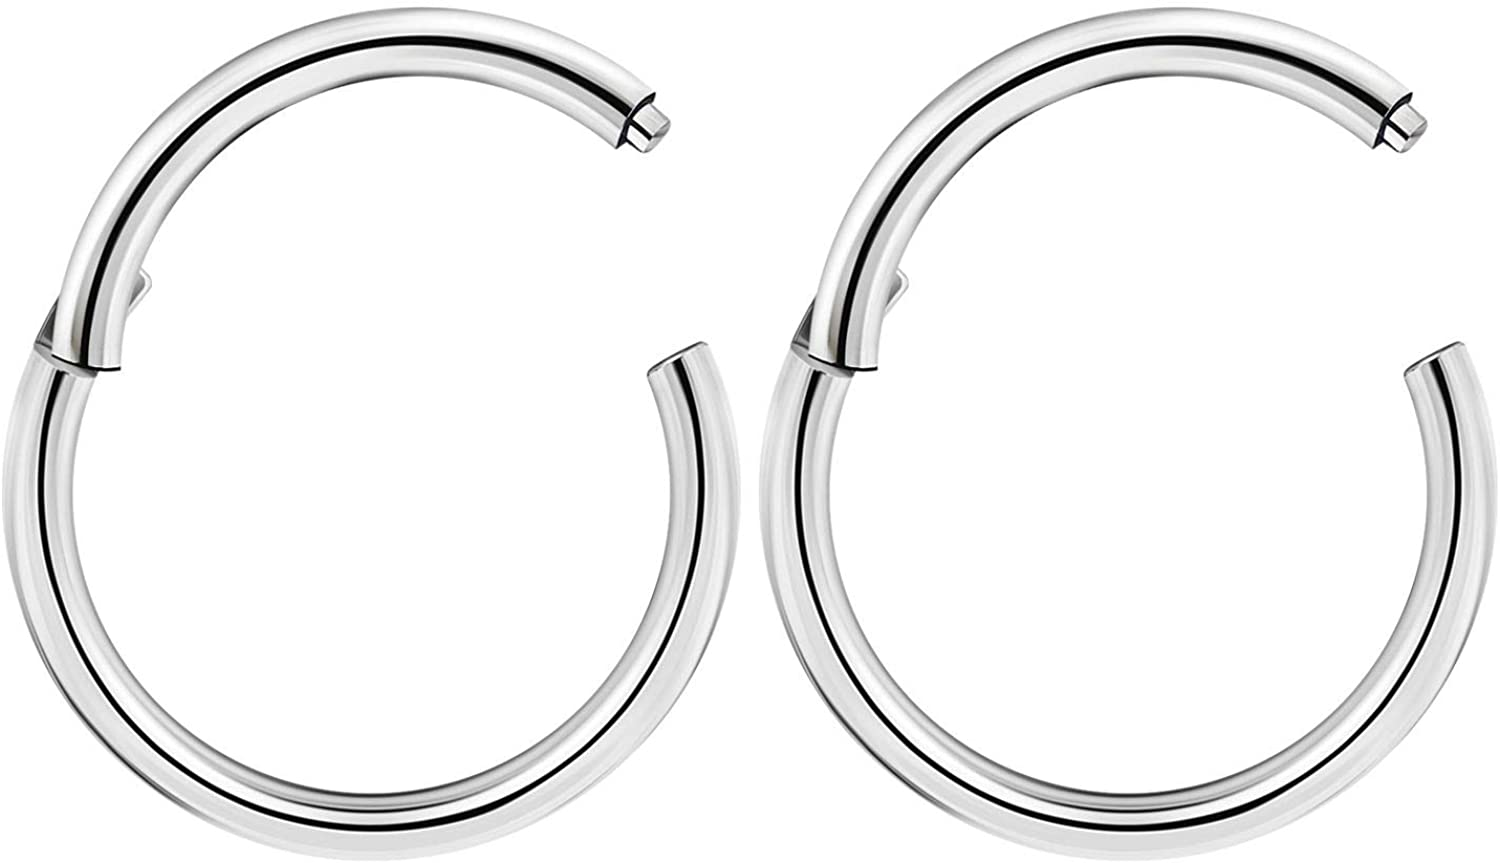 18g 8mm Nose Ring Thin Hoop Lightweight High Quality Stainless Steel Body Jewellery Choose Colour